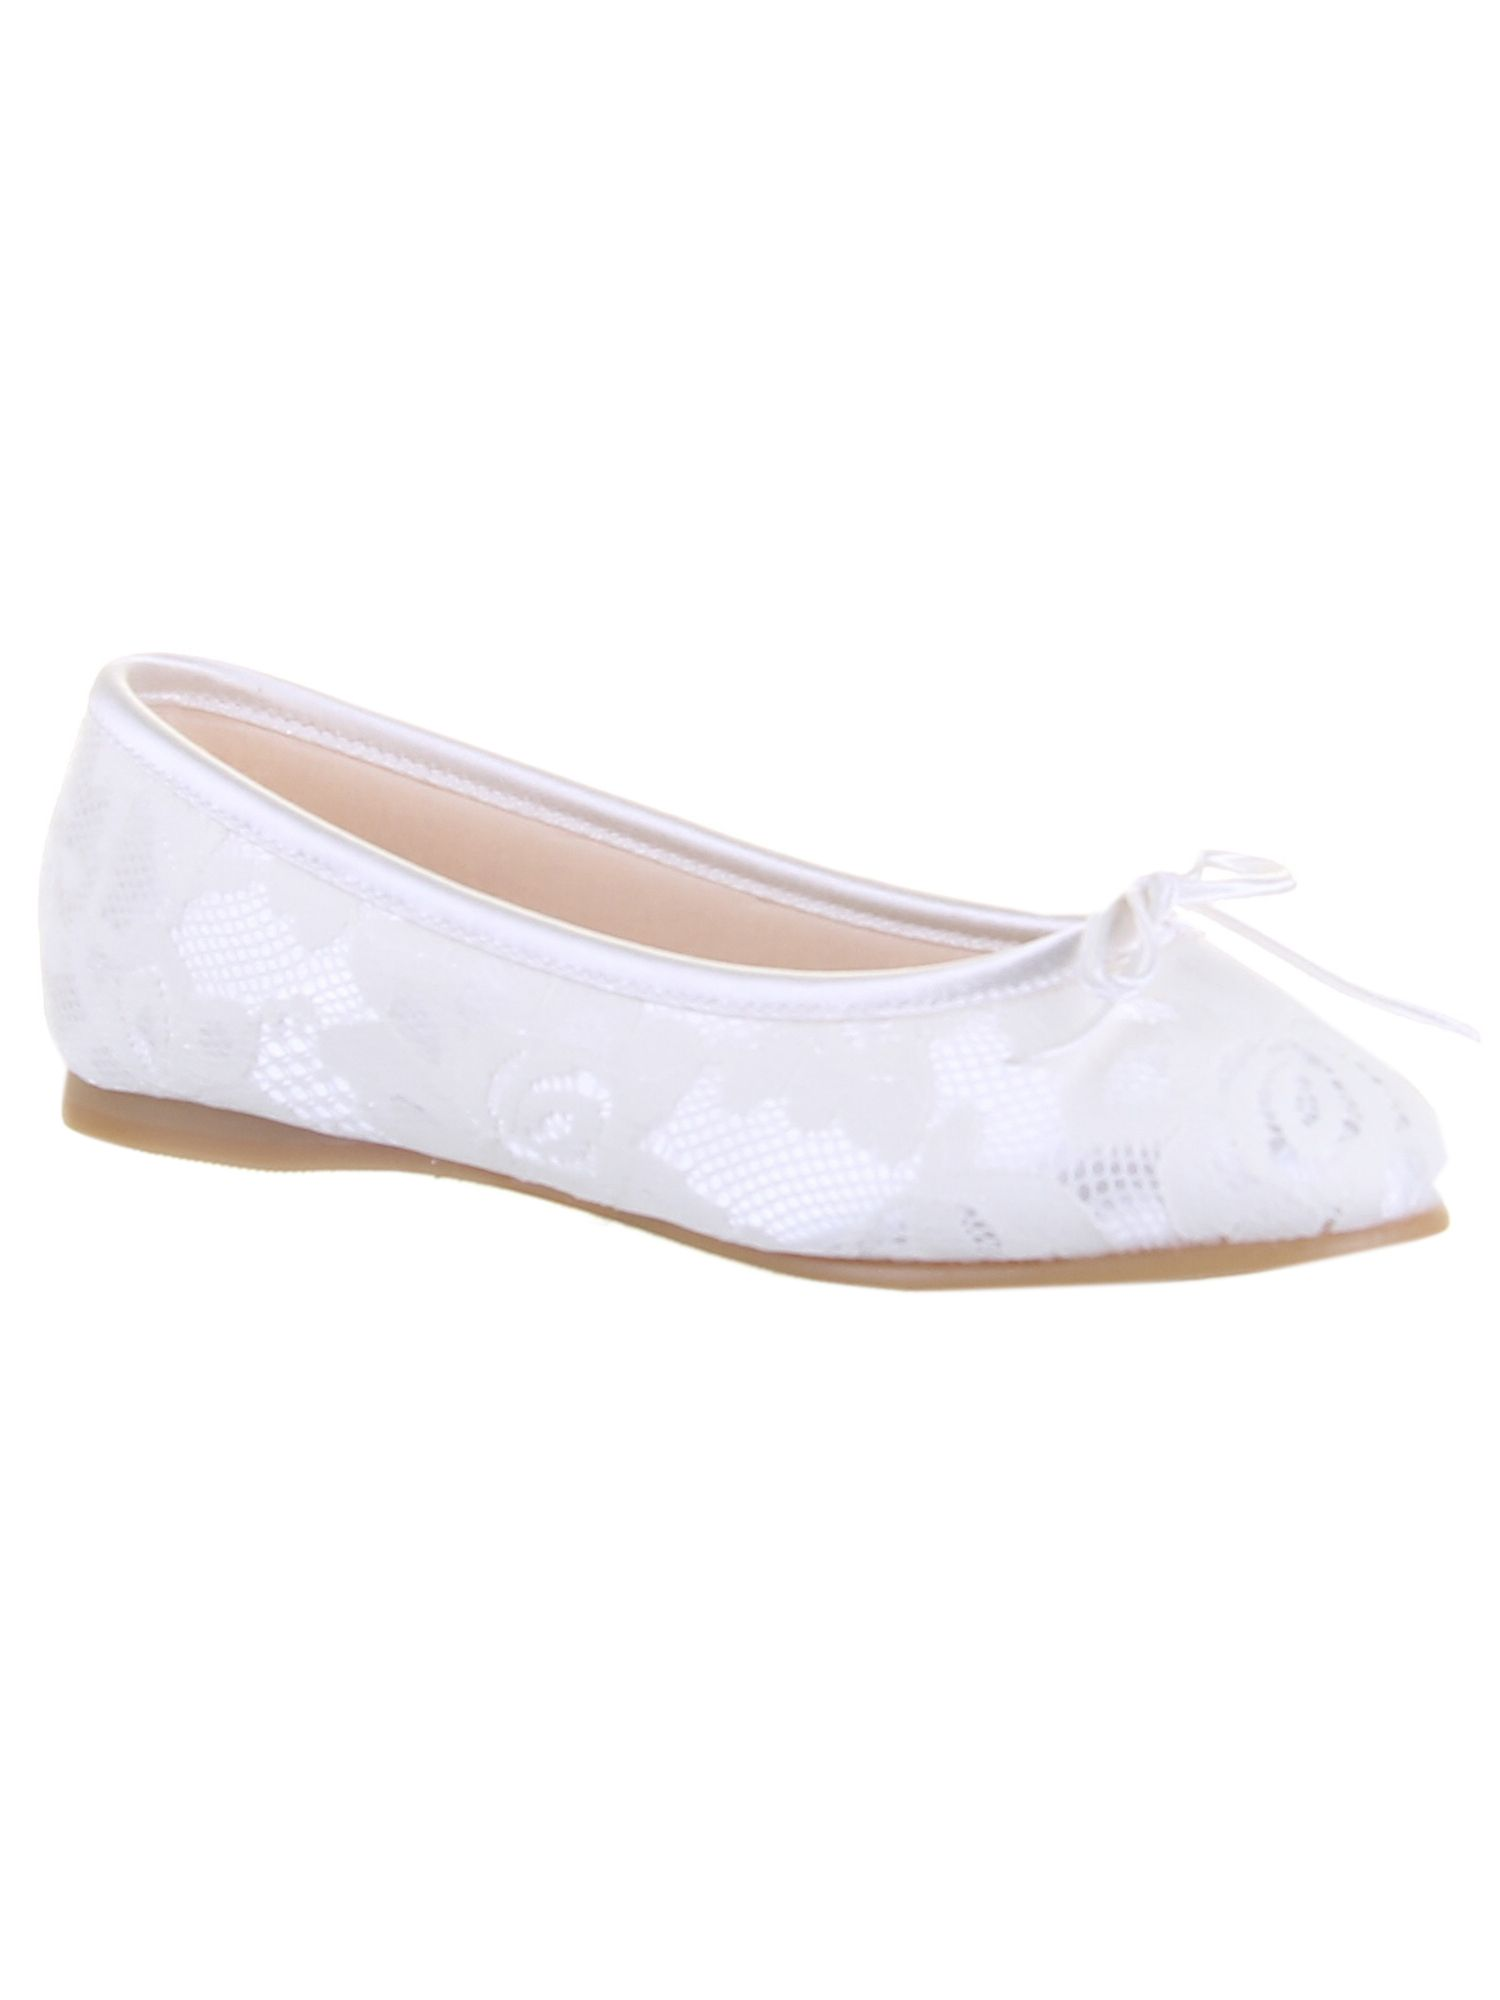 Girls Charlie fine lace pump occasion shoe